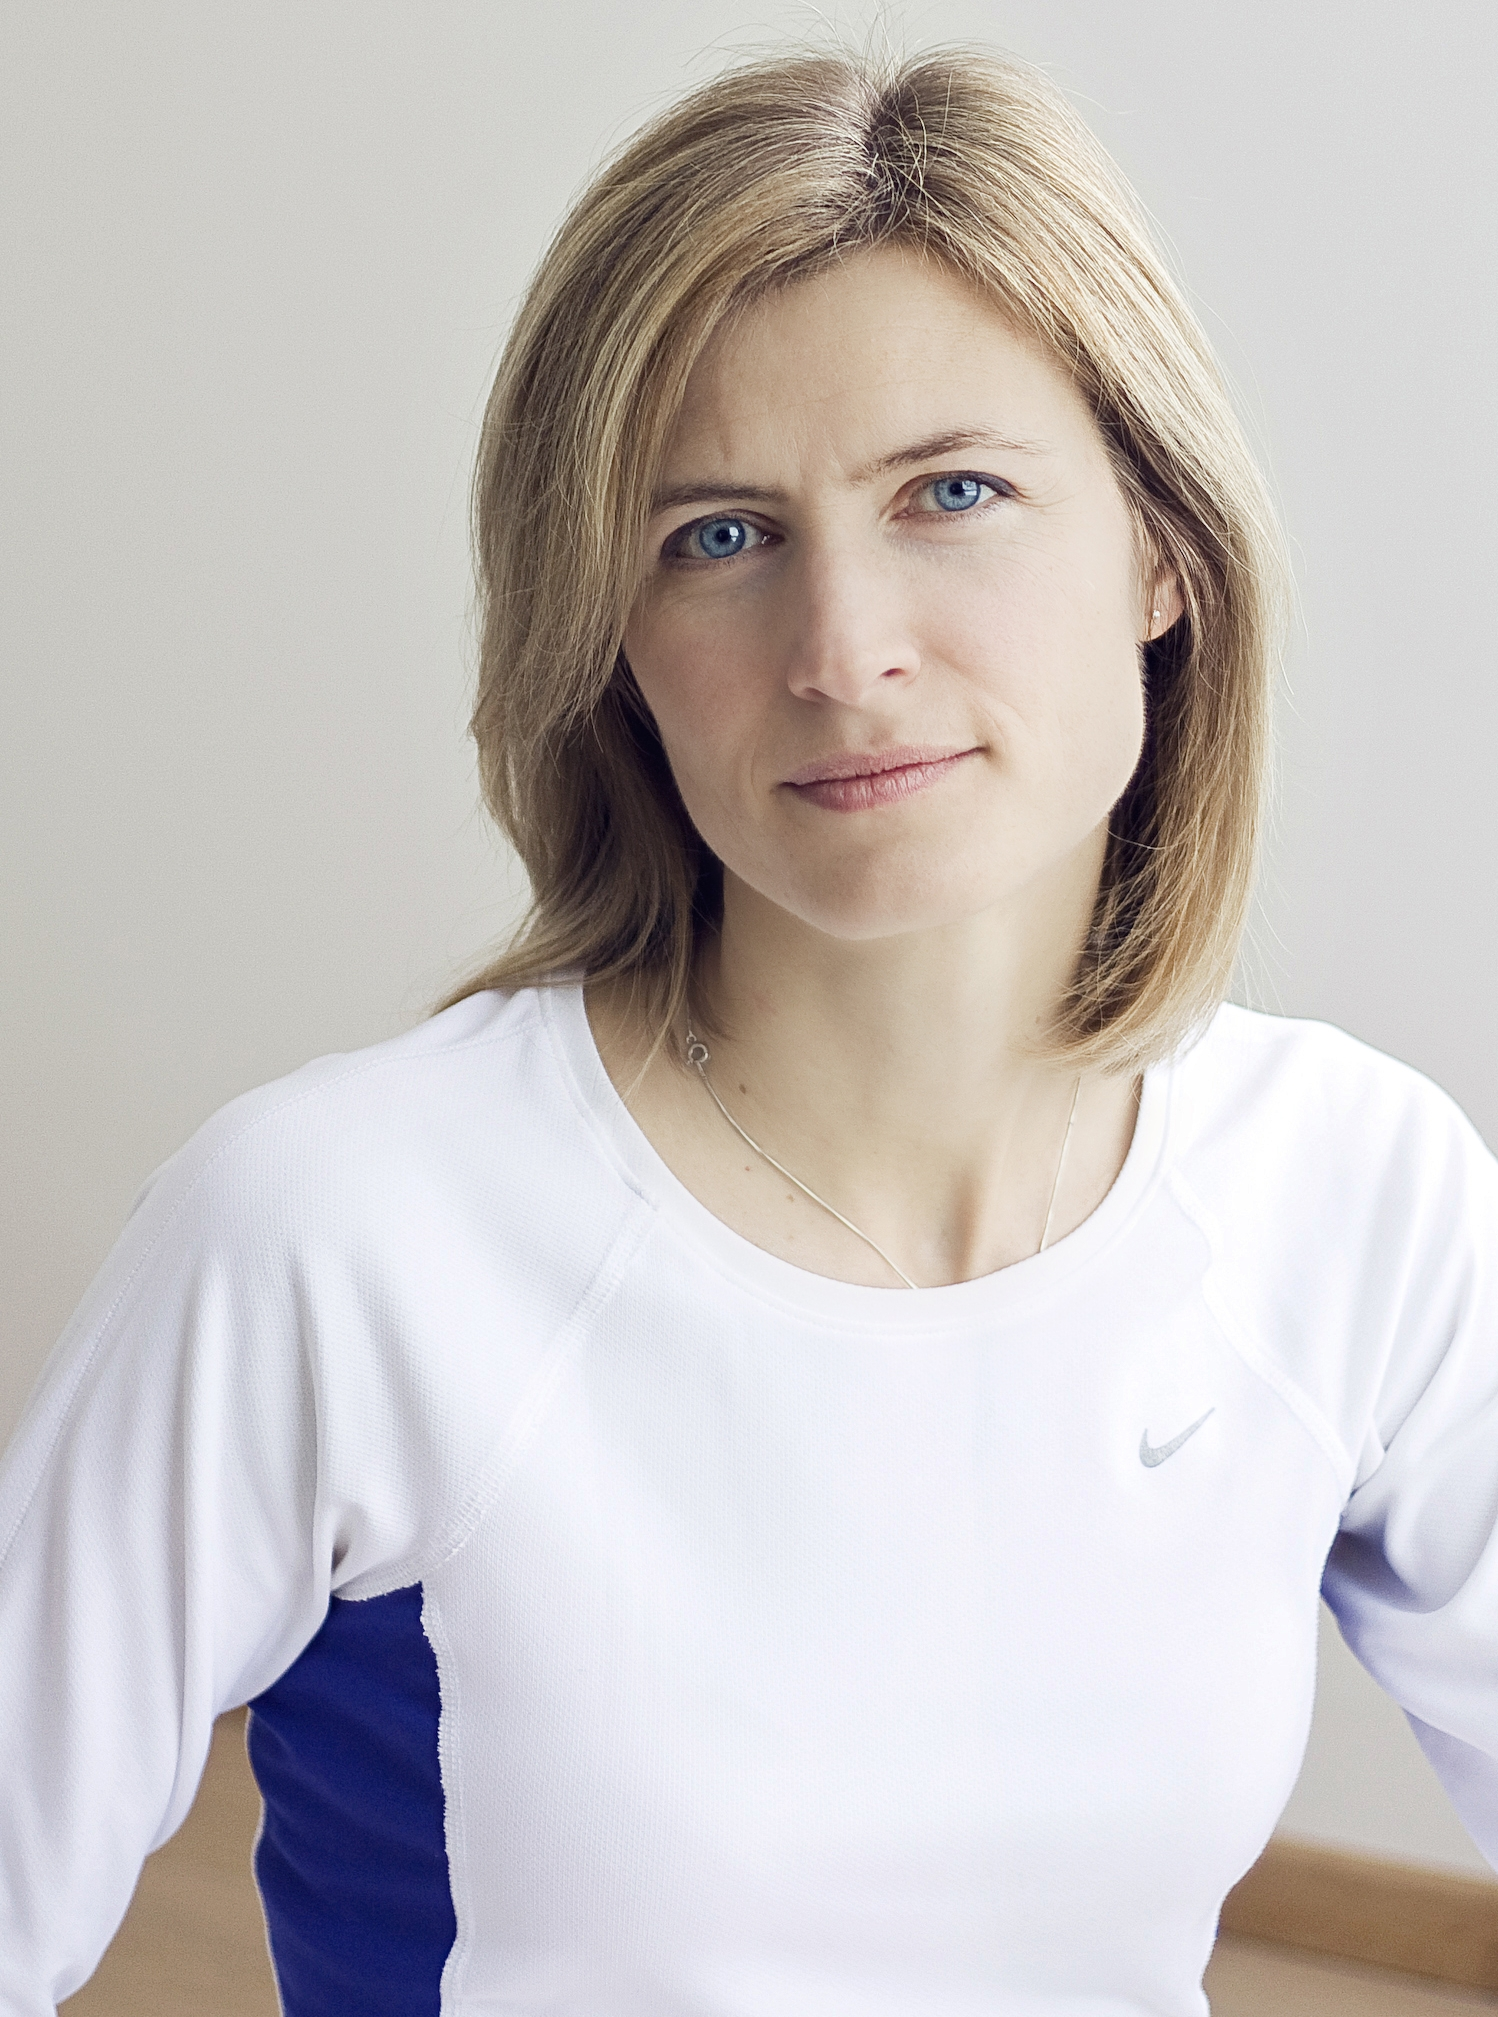 Inga Rubikienė is a yoga teacher and psychologist